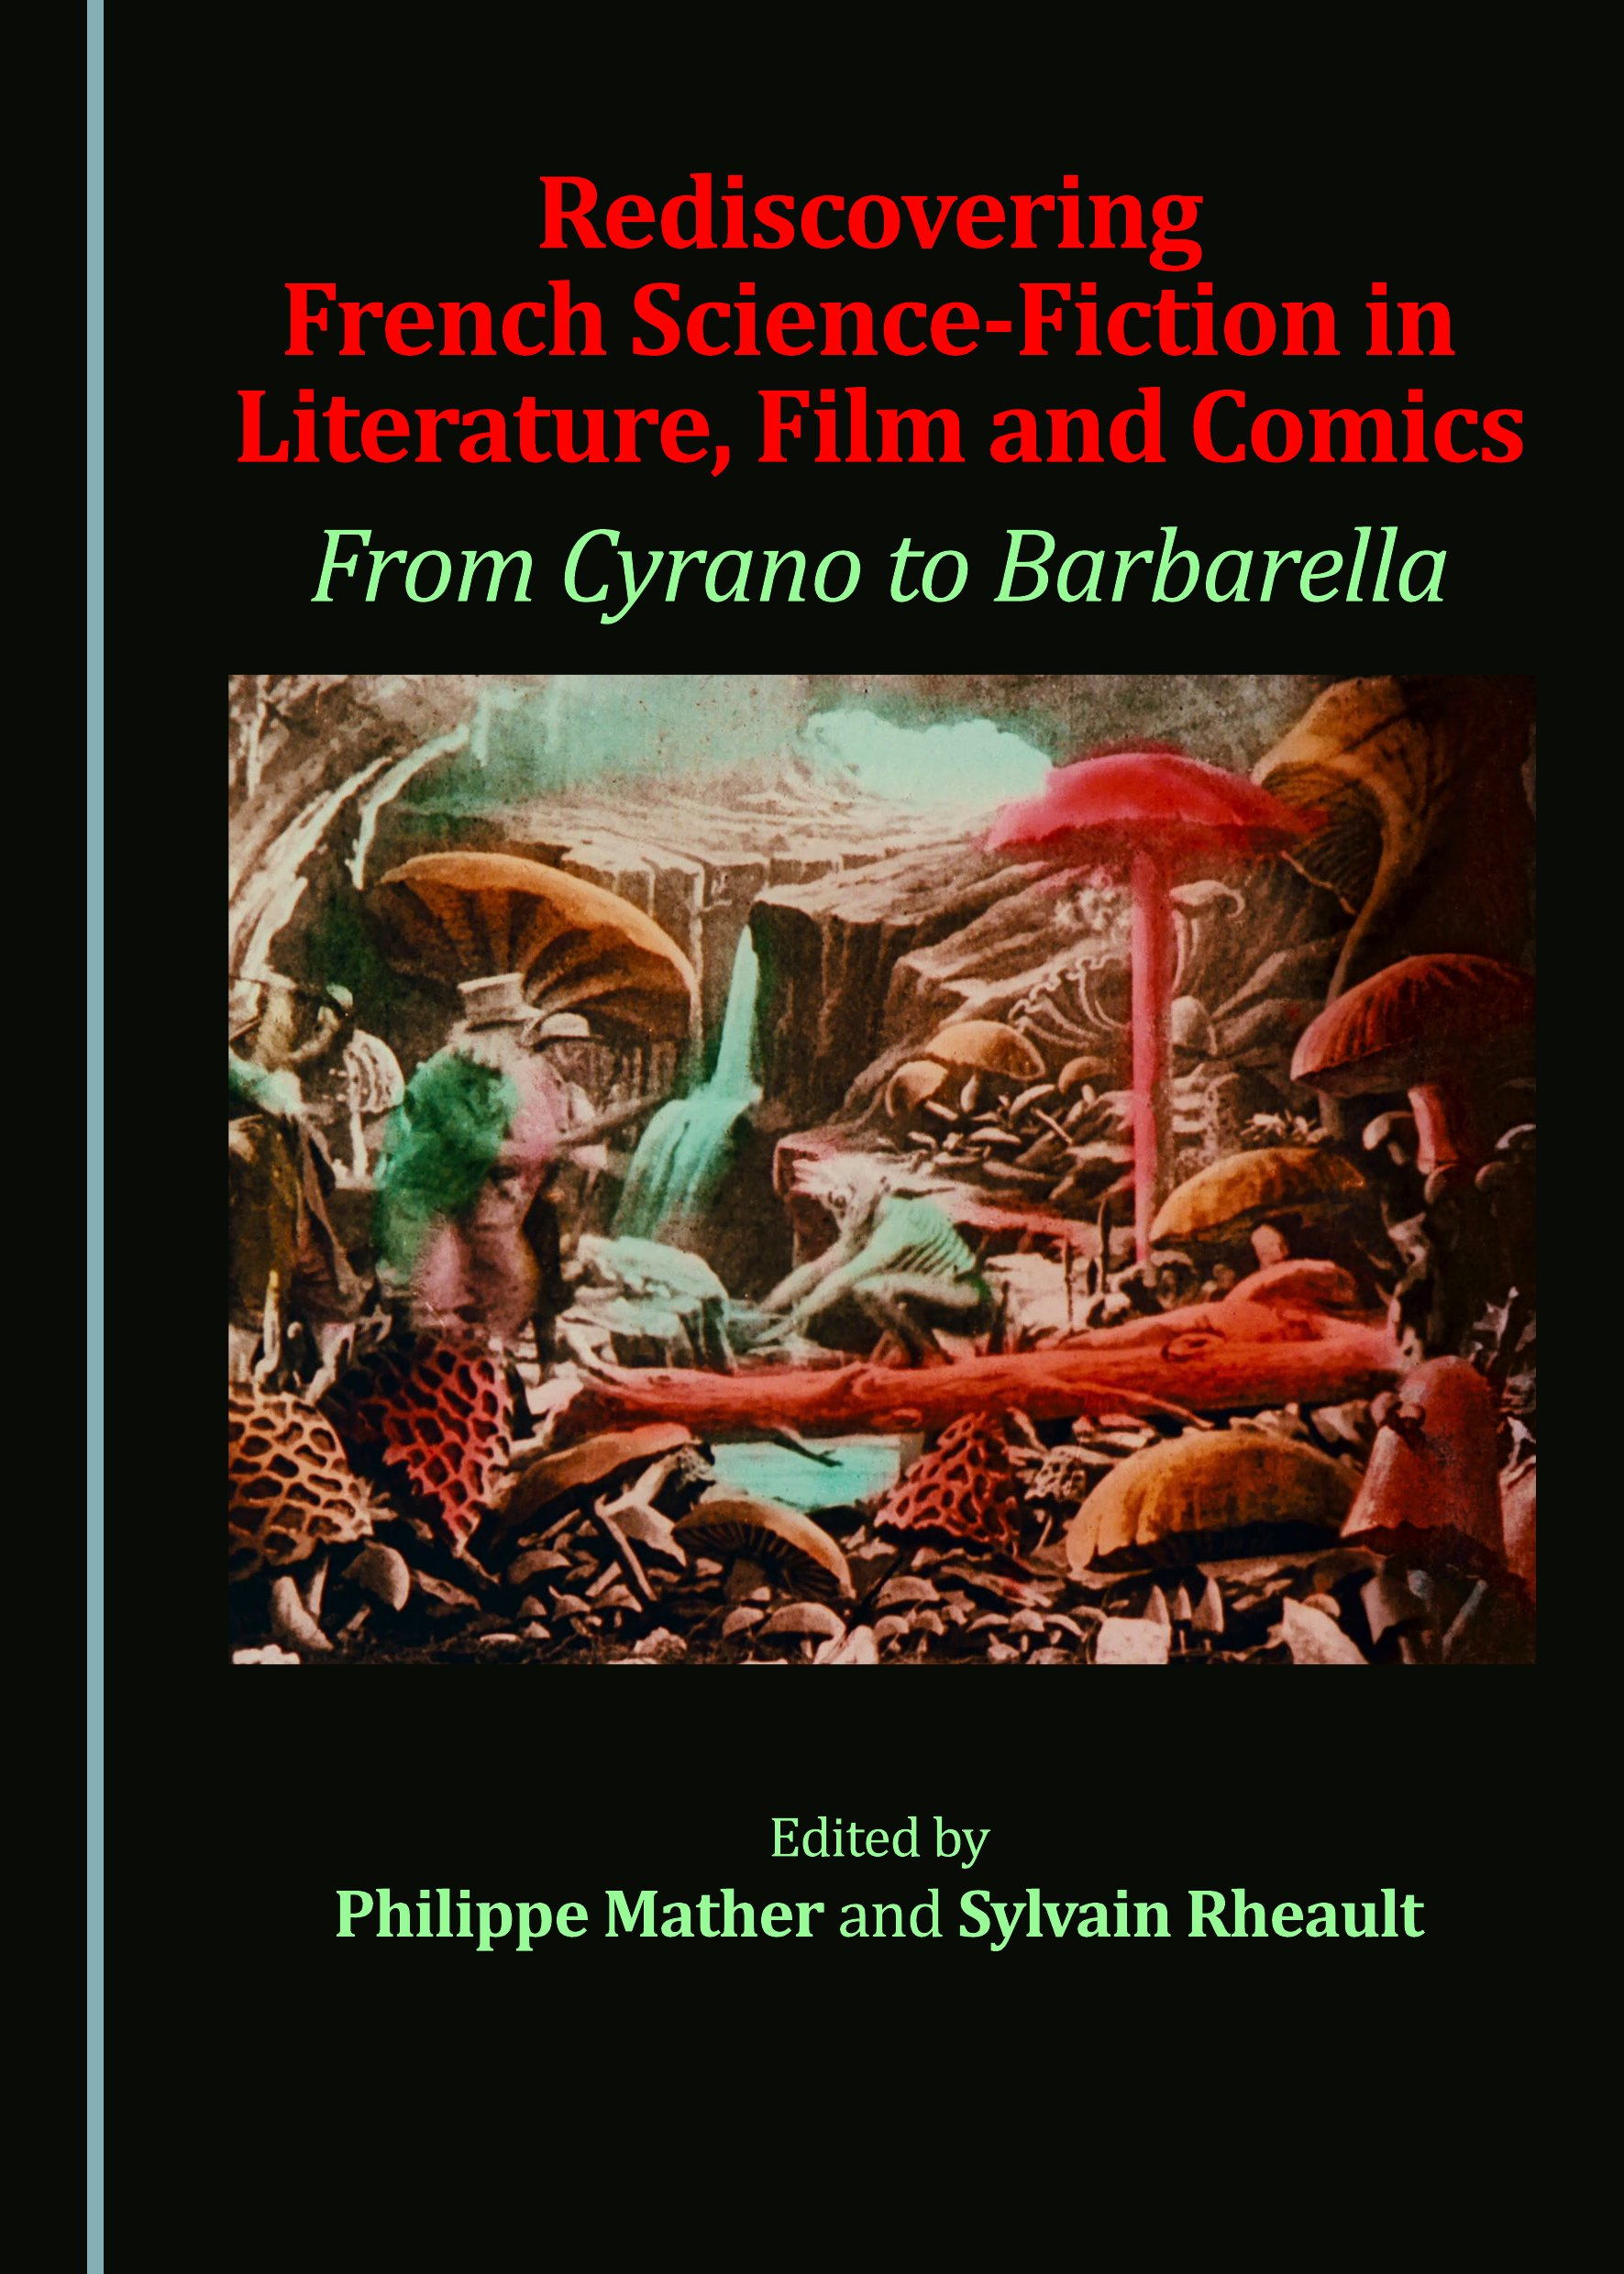 Rediscovering French Science-Fiction in Literature, Film and Comics: From Cyrano to Barbarella